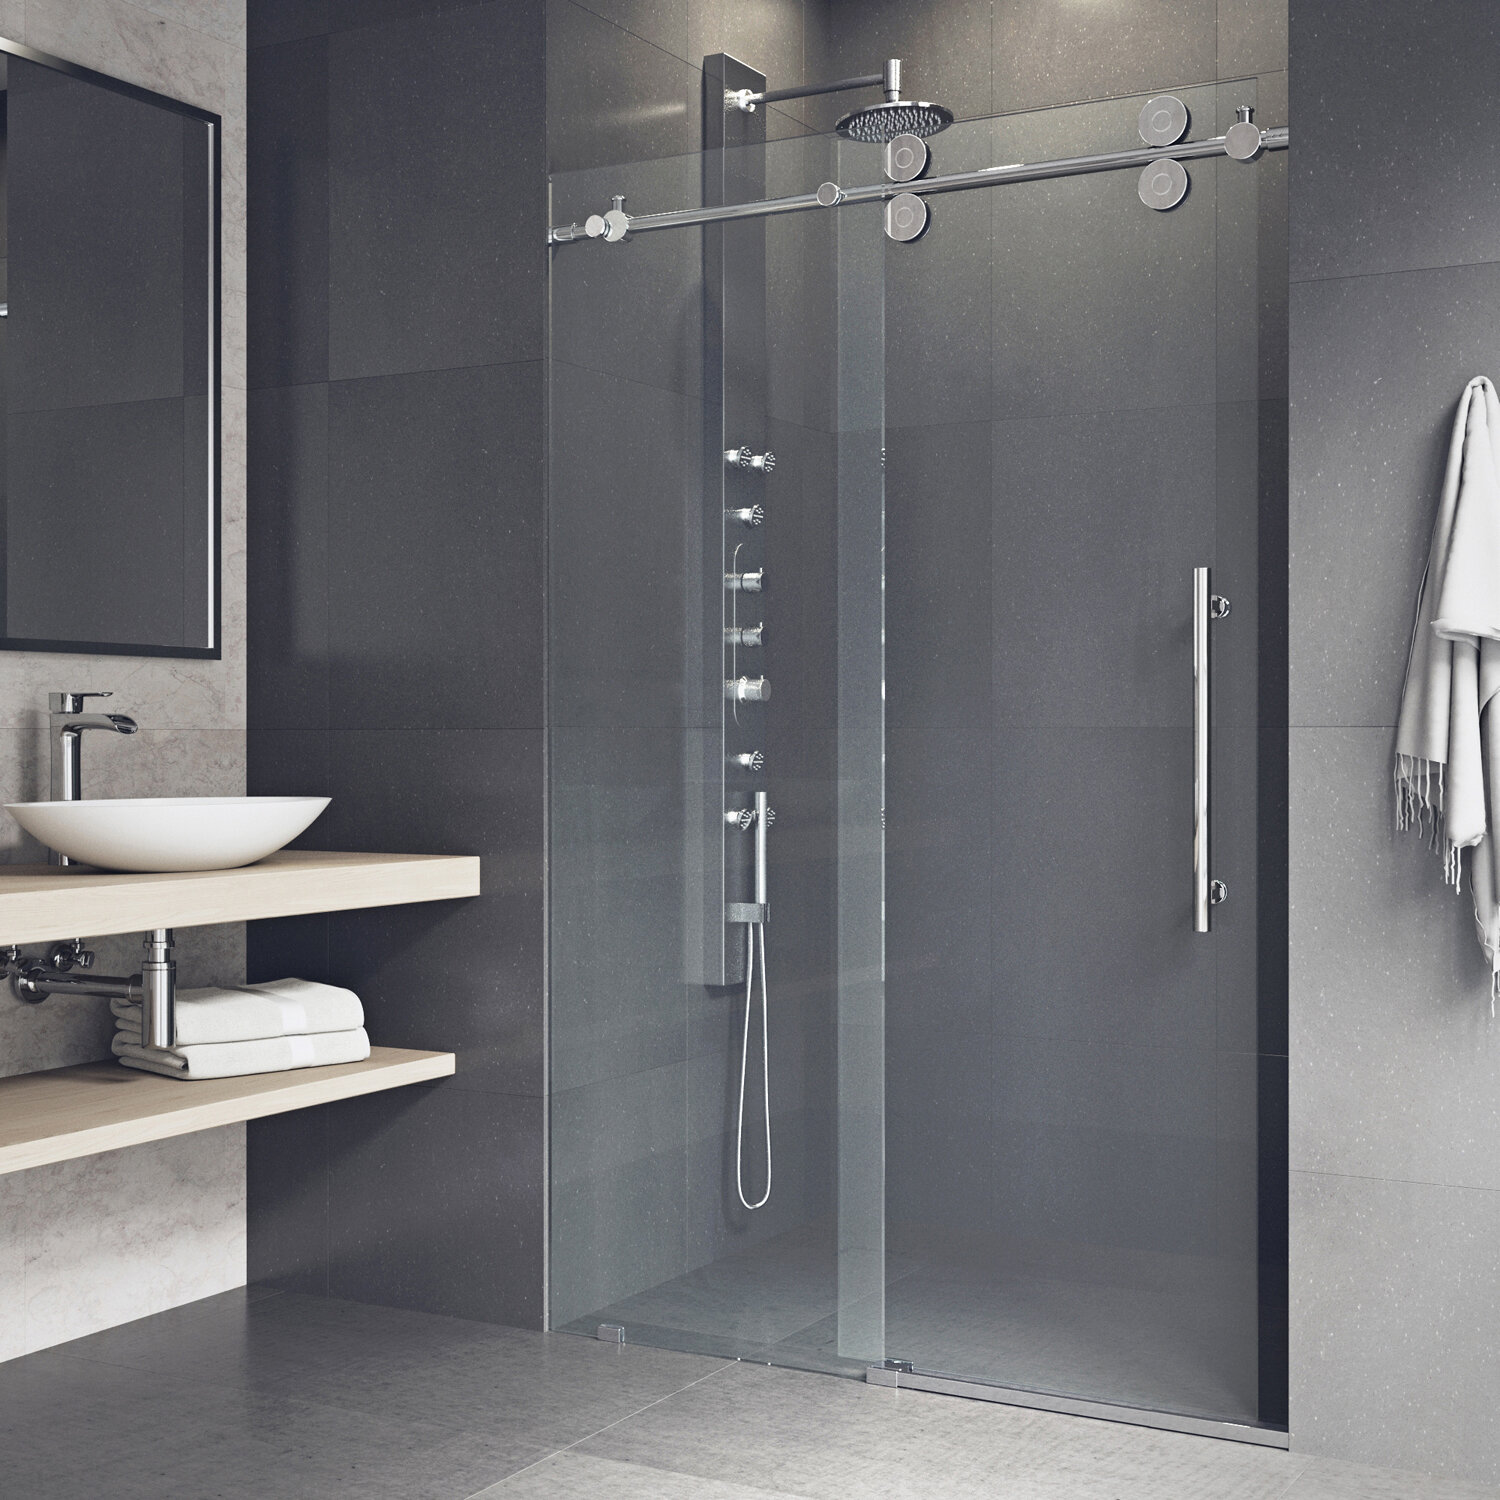 Details About Elan 60 X74 Single Sliding Frameless Shower Door W Rollerdisk Technology Chro